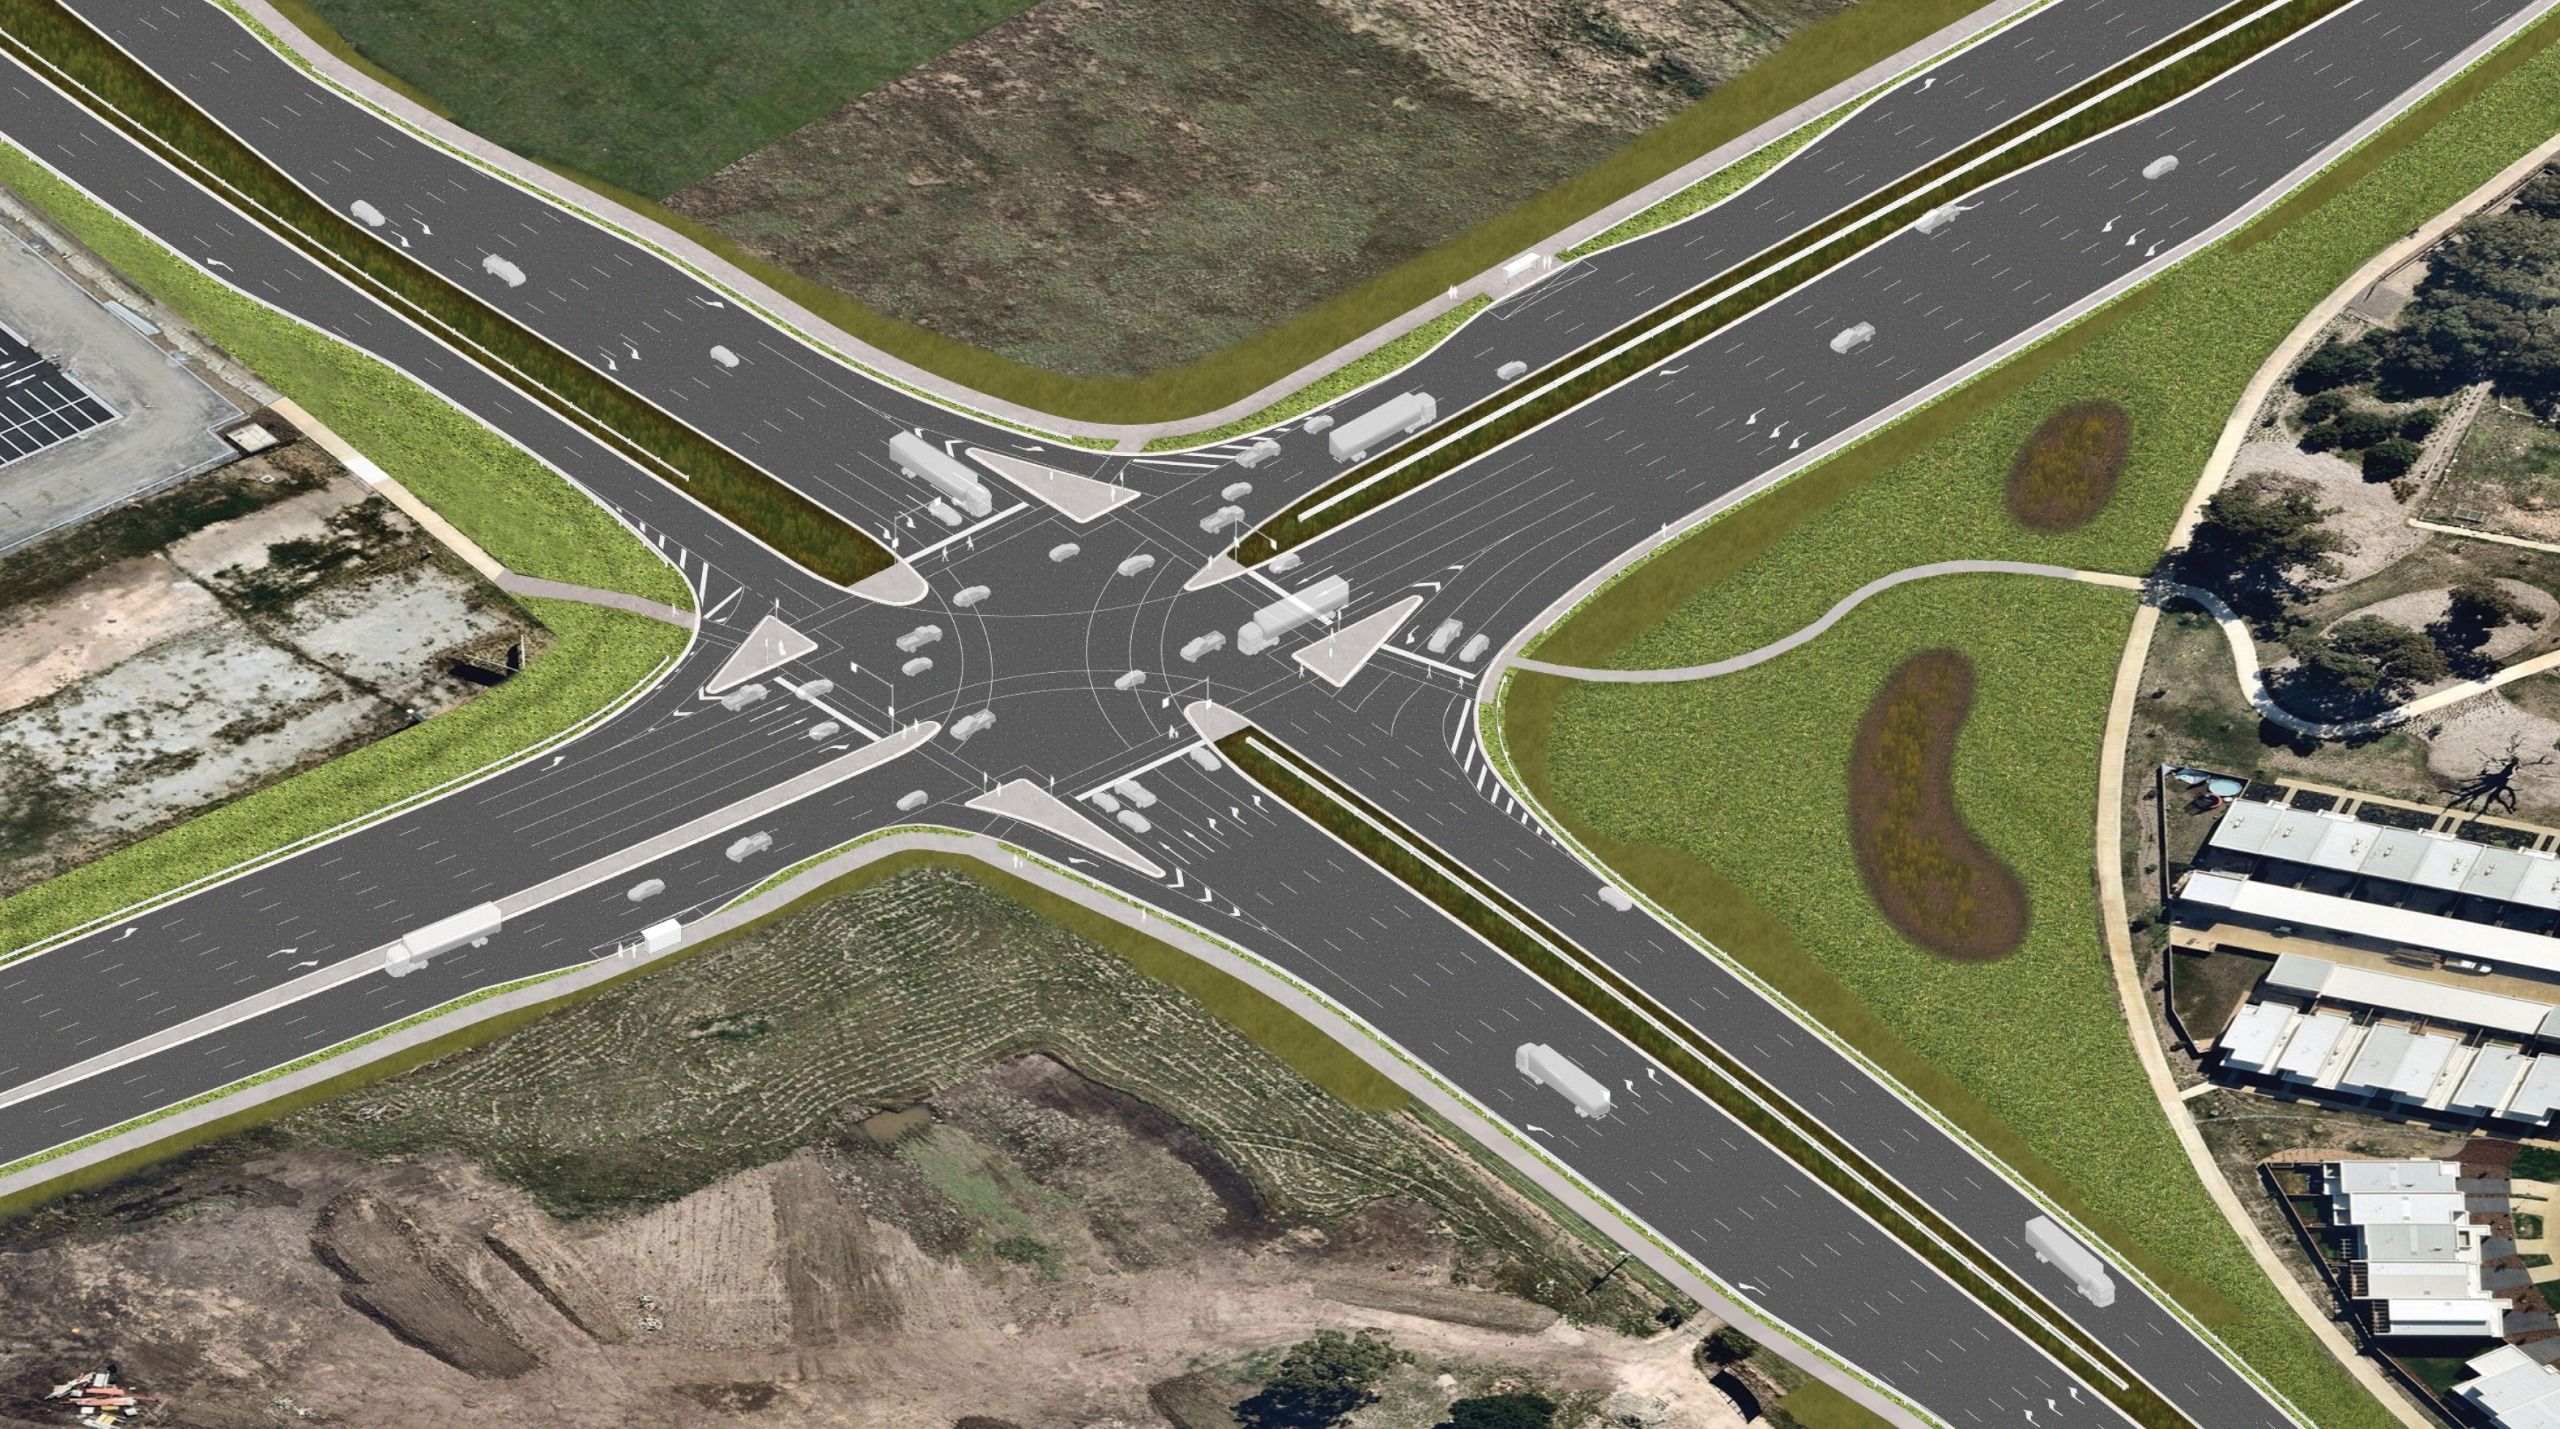 Aerial view artist's impression of Evans Road 1 year after project completion